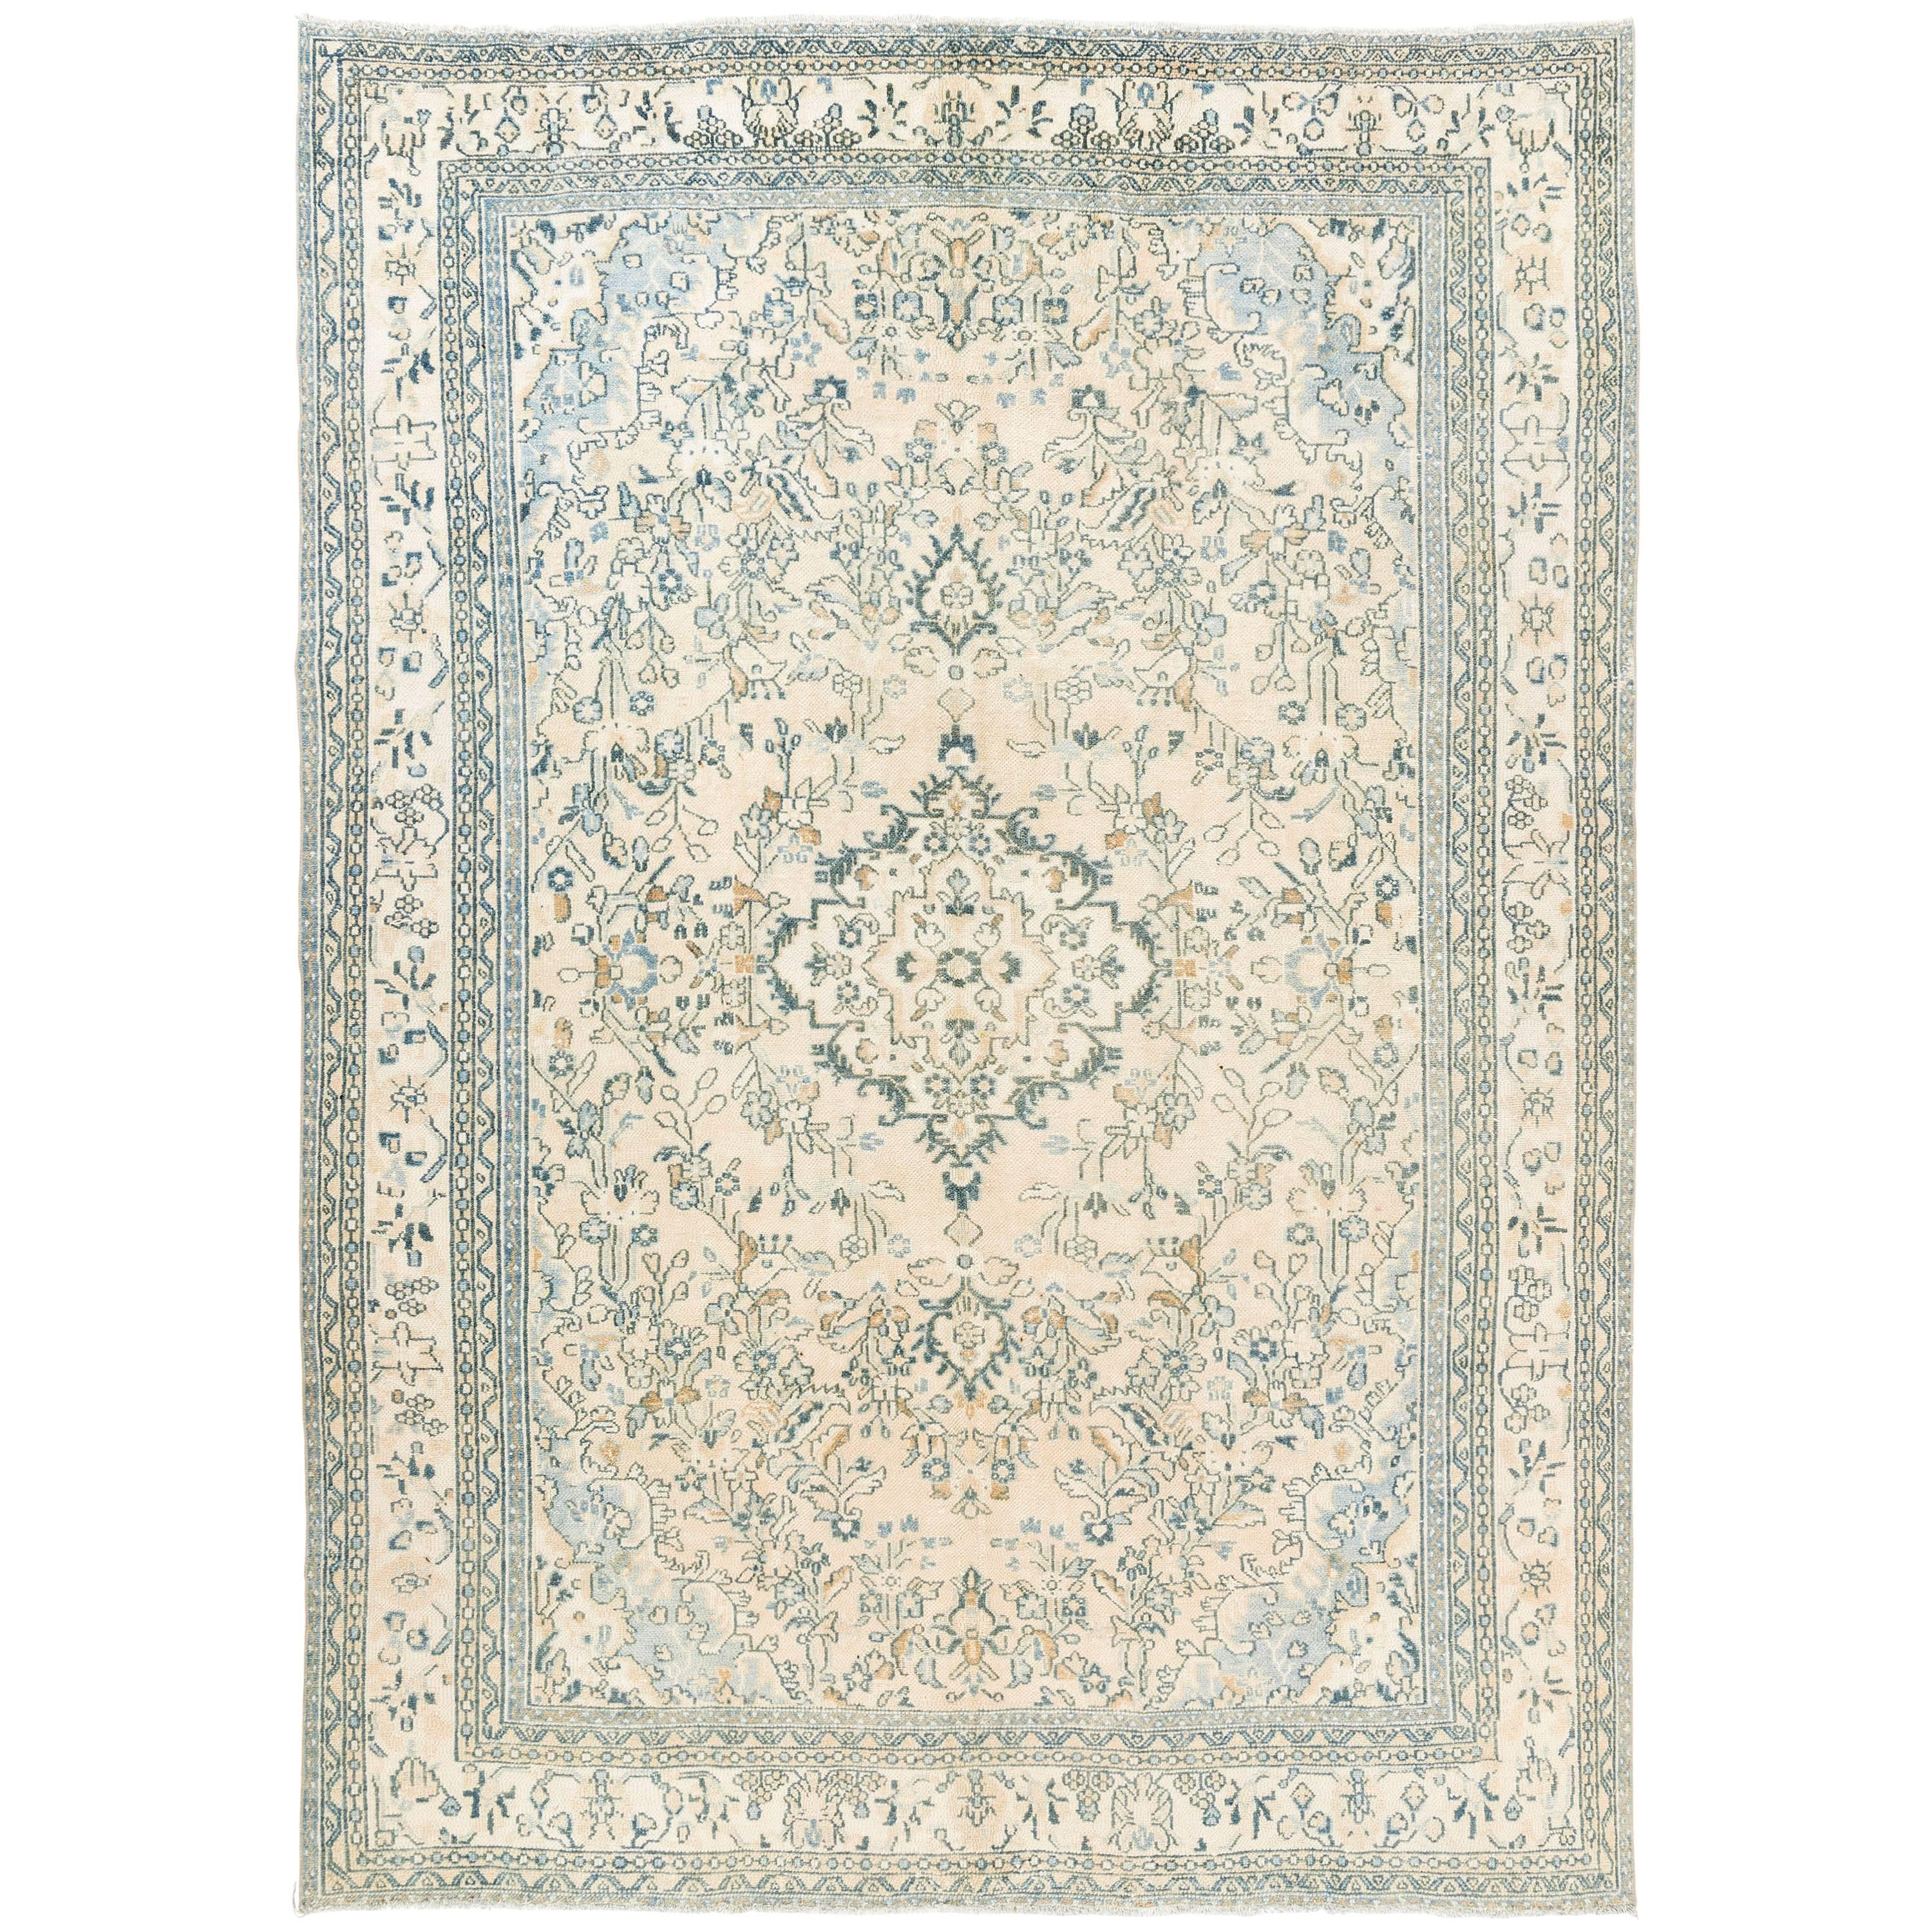 Teal Color Area Rugs Vintage Oushak Area Rug In Soft Aqua Blue Teal Rust And Cream Colors